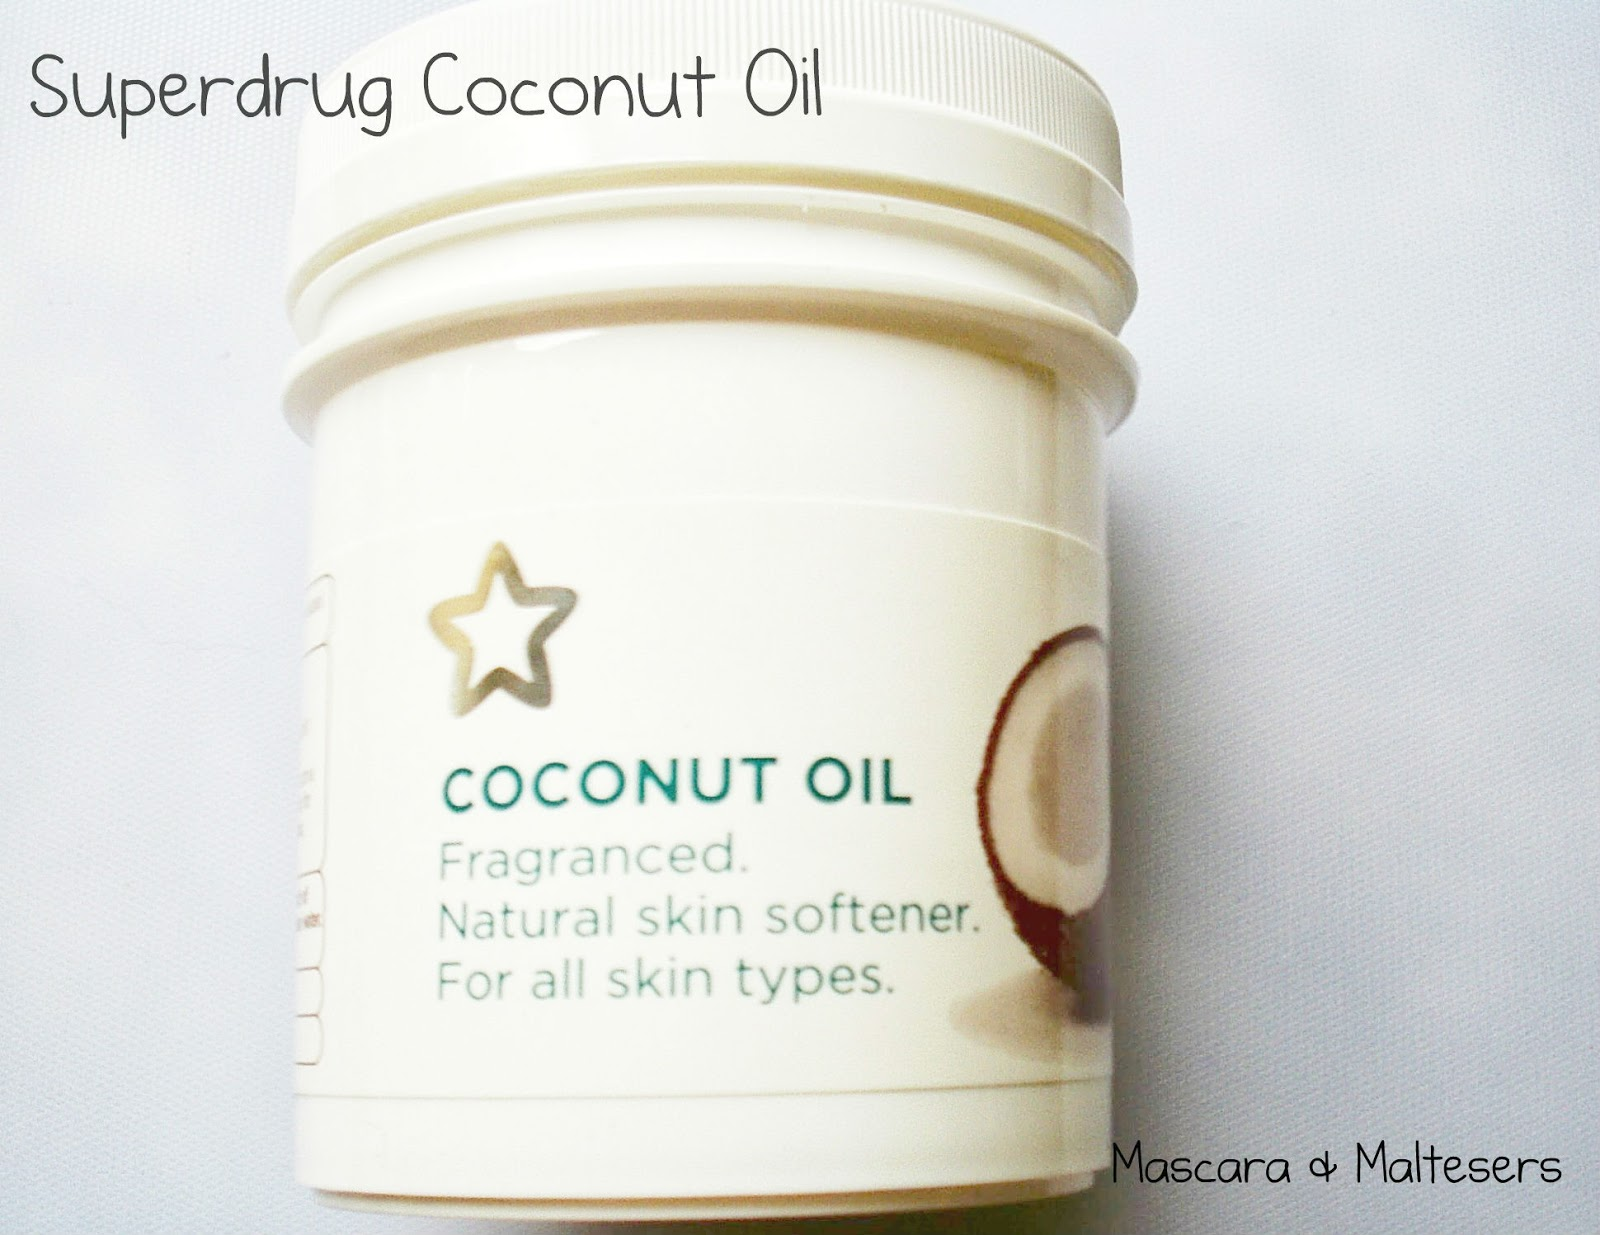 Superdrug Coconut Oil For Hair Review